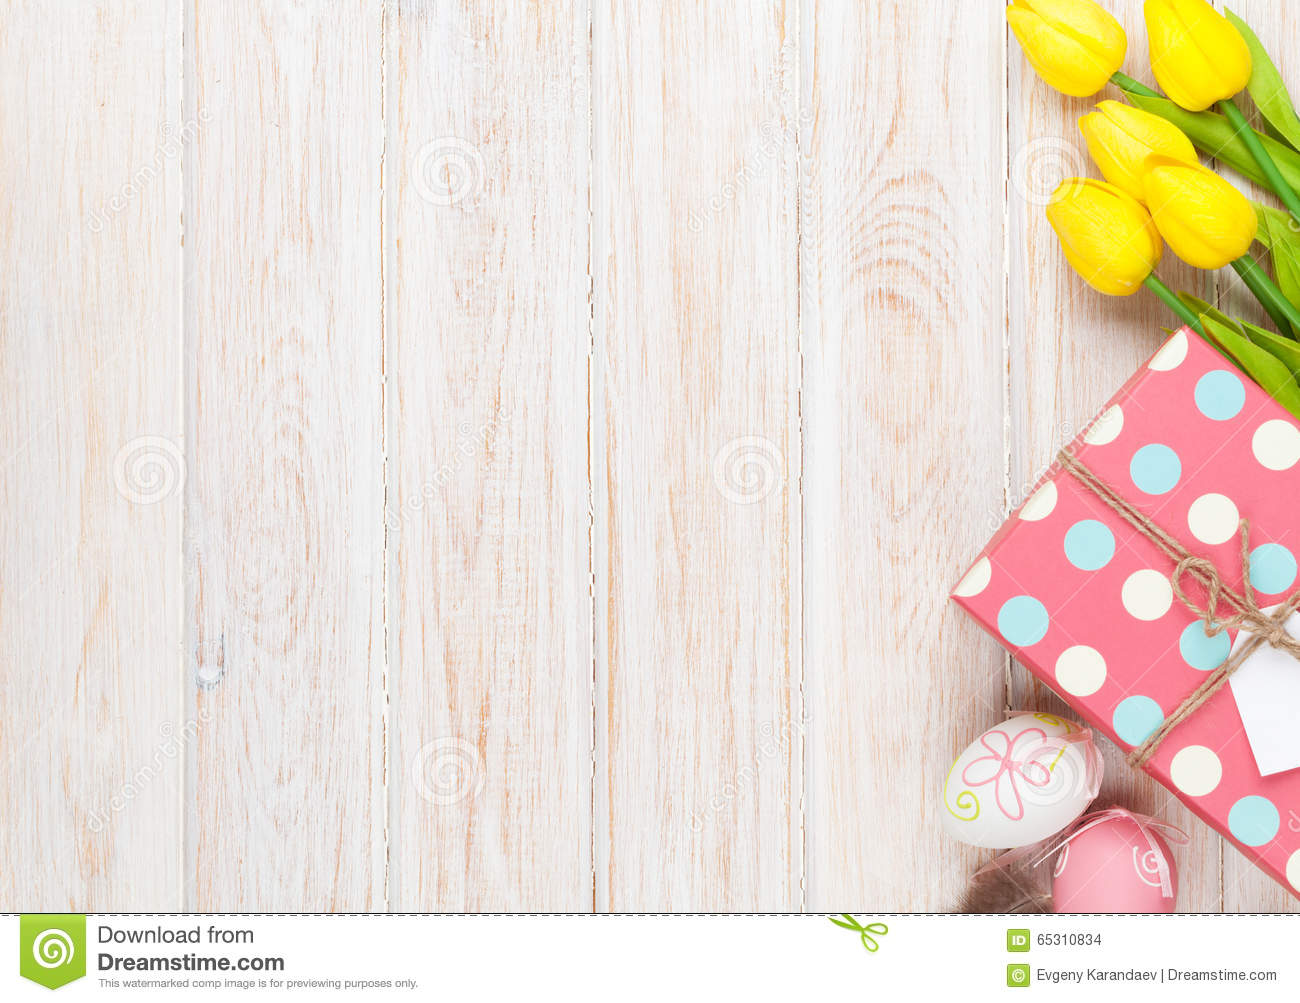 Easter background with colorful eggs and yellow tulips